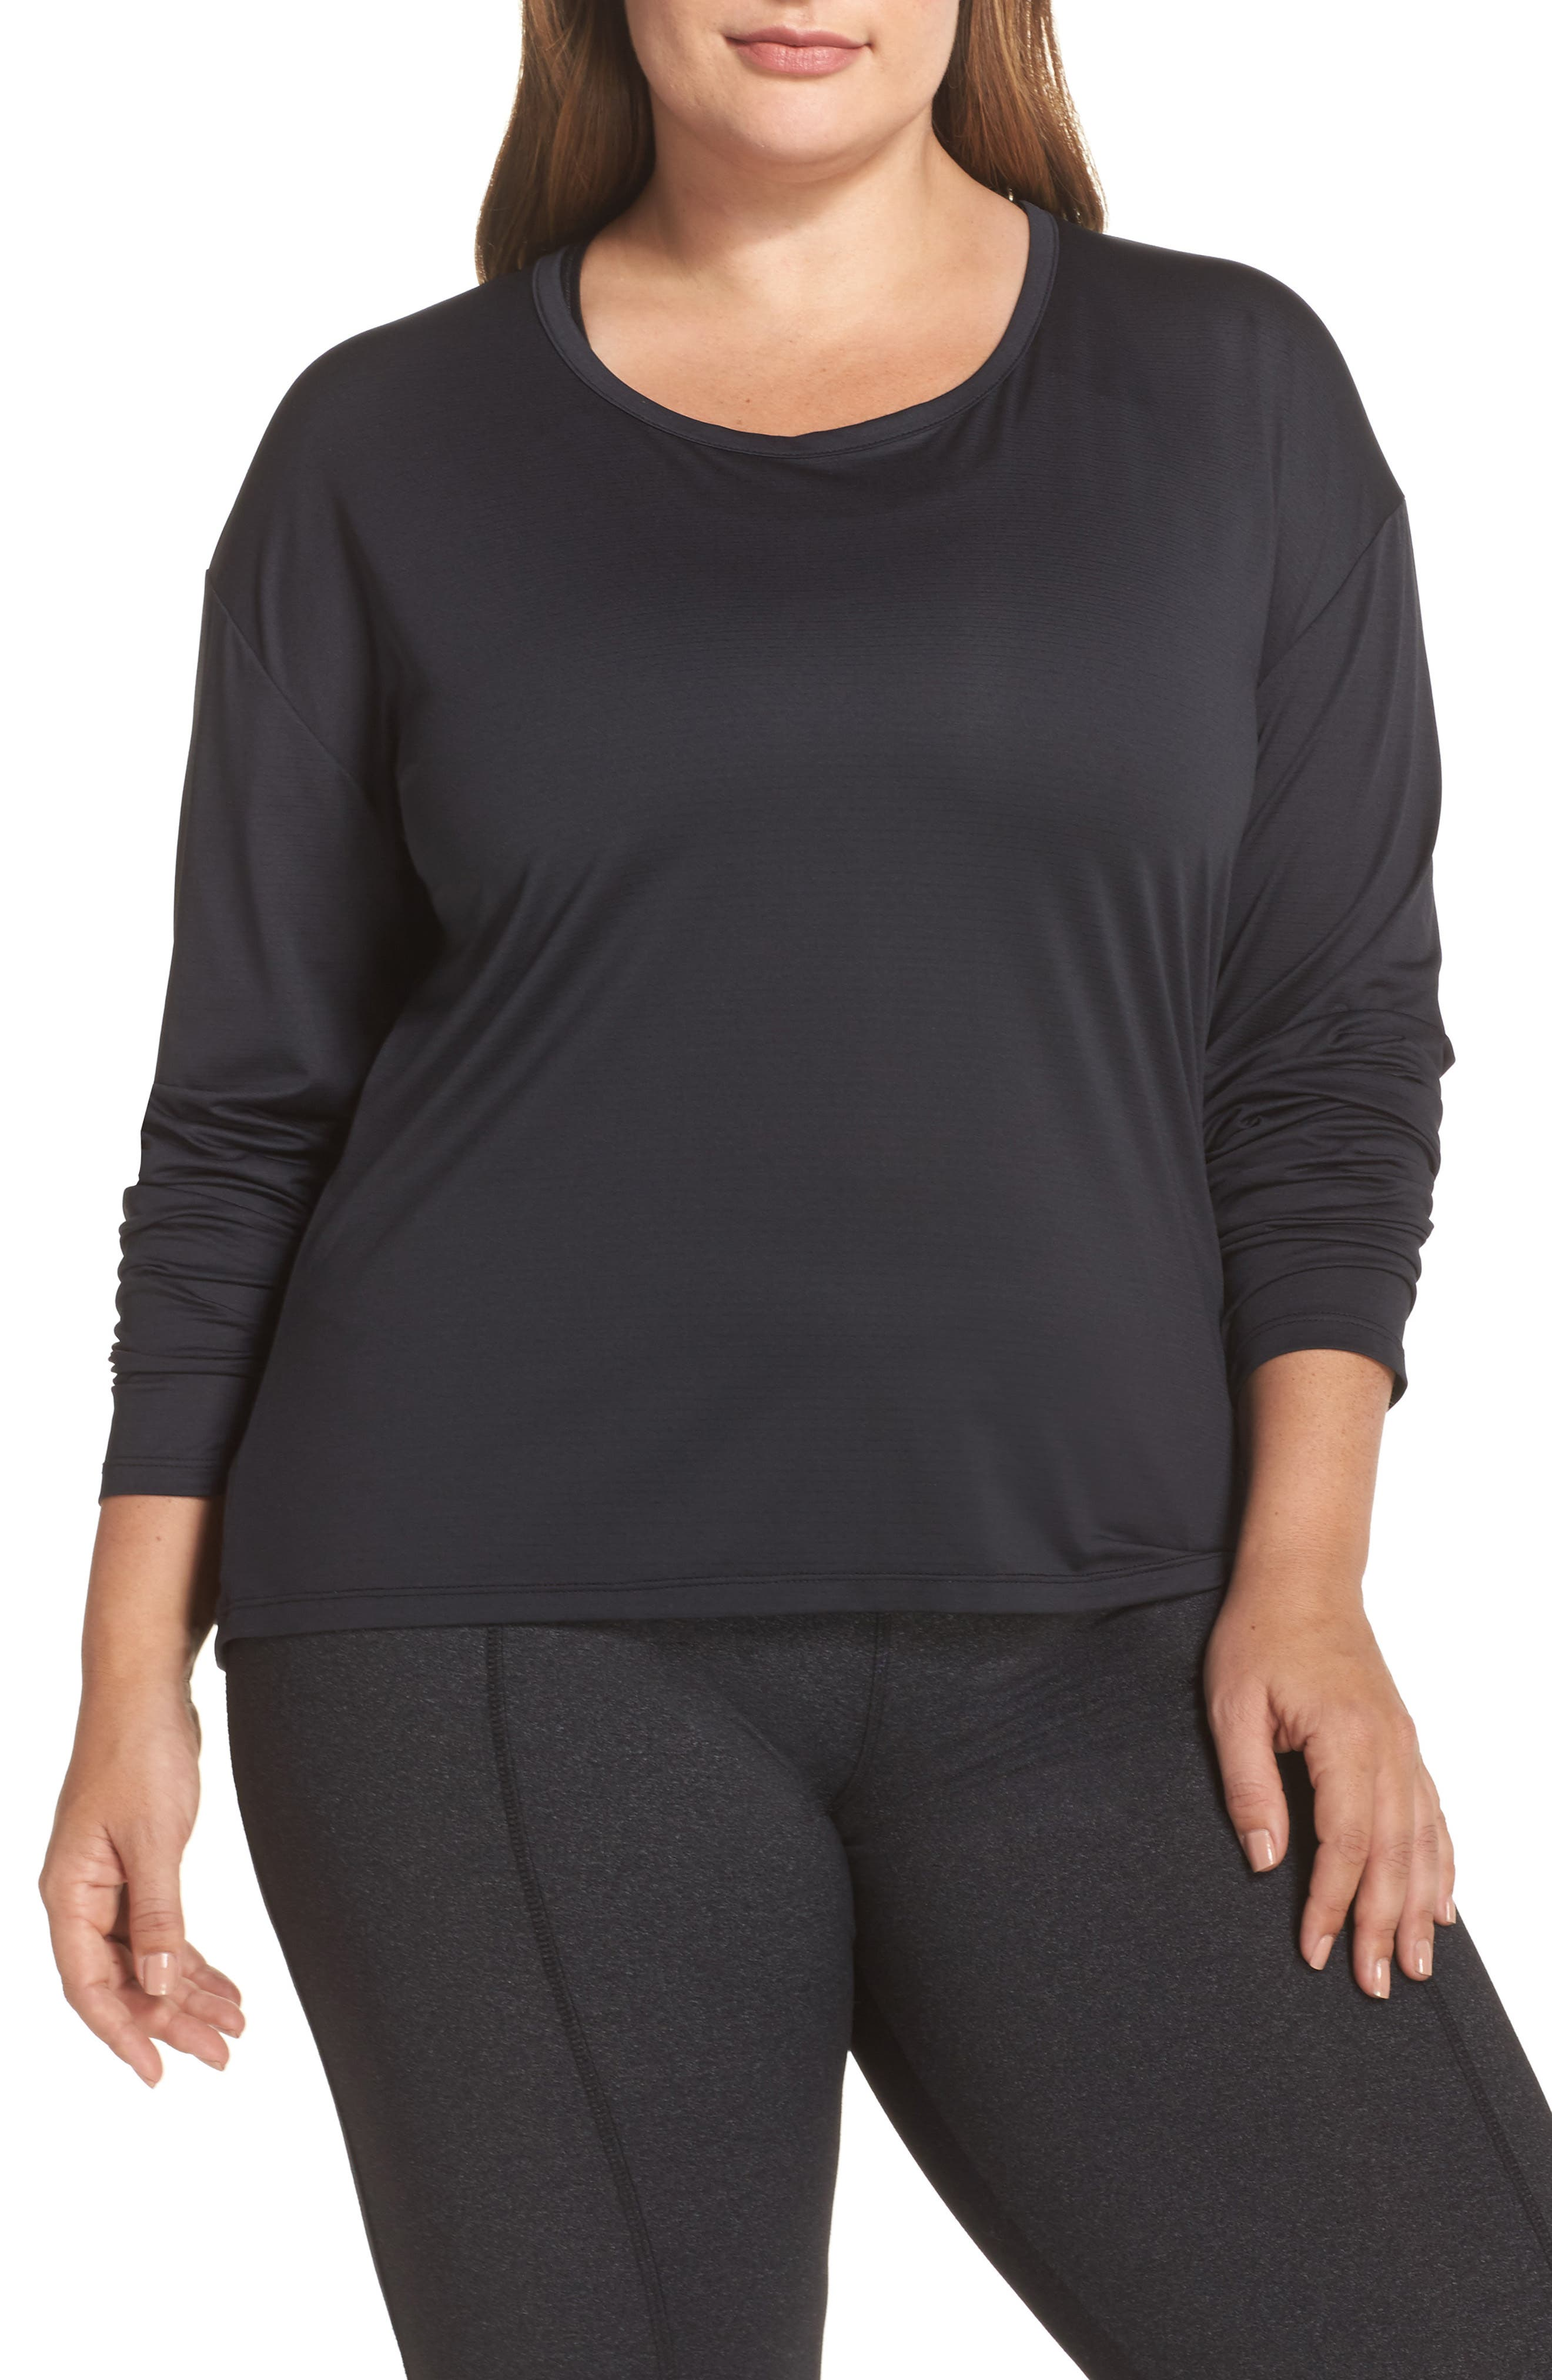 Main Image - Marika Curves Shift Open Back Top (Plus Size)